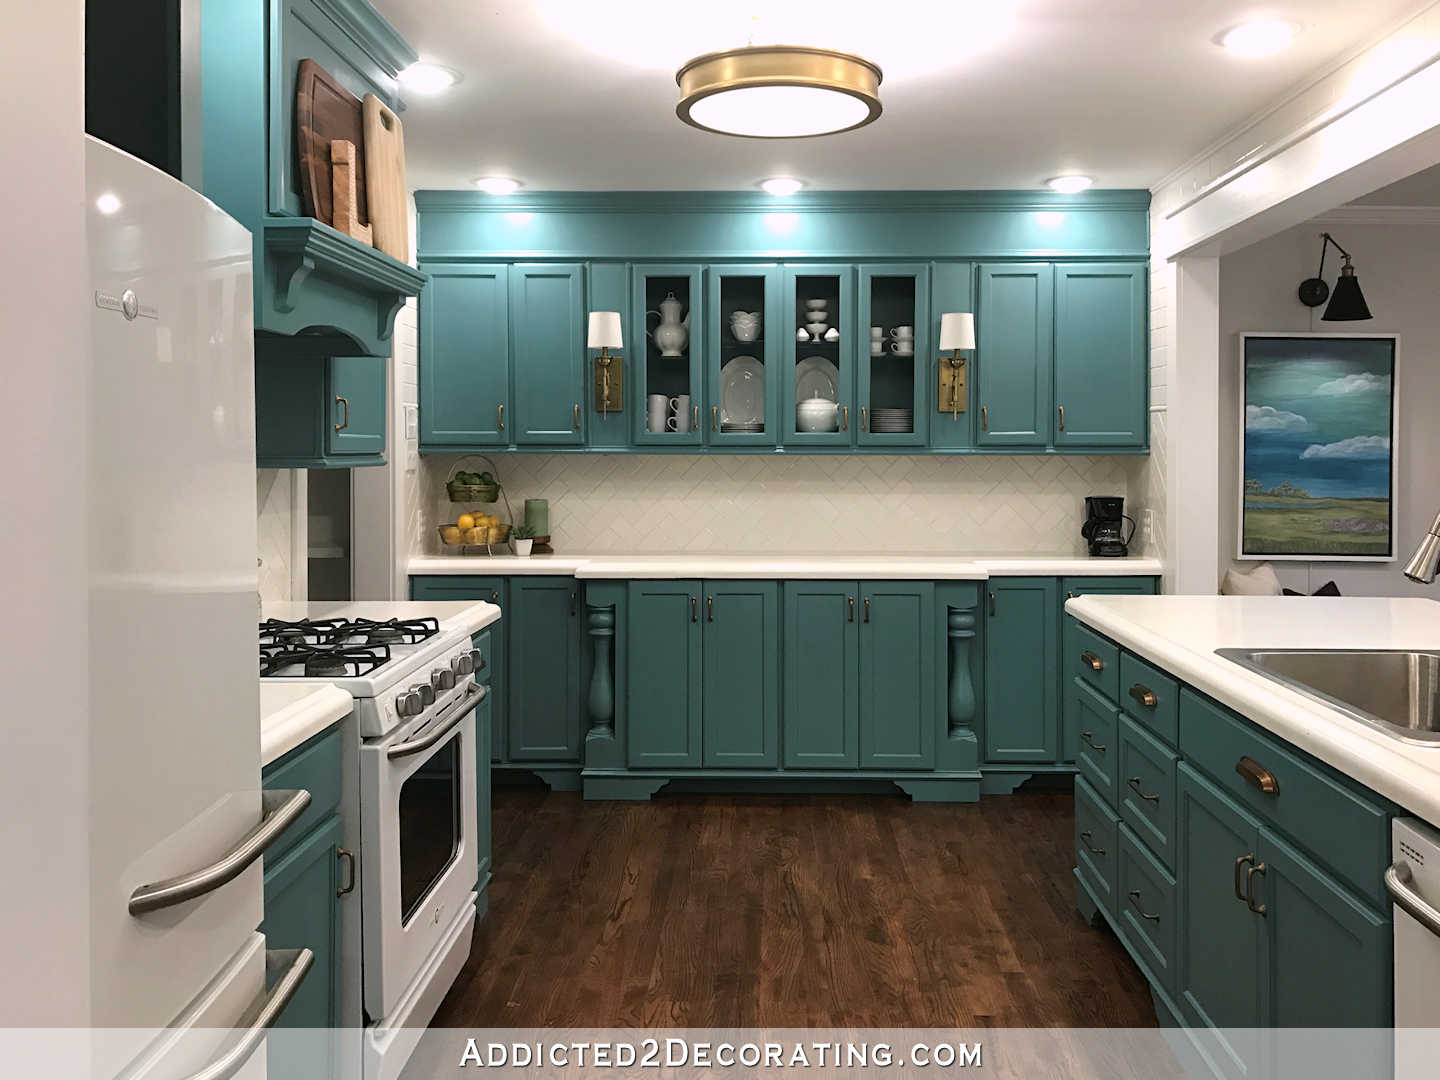 Teal Kitchen Decorating Ideas My Finished For Now Kitchen From Kelly Green To Teal